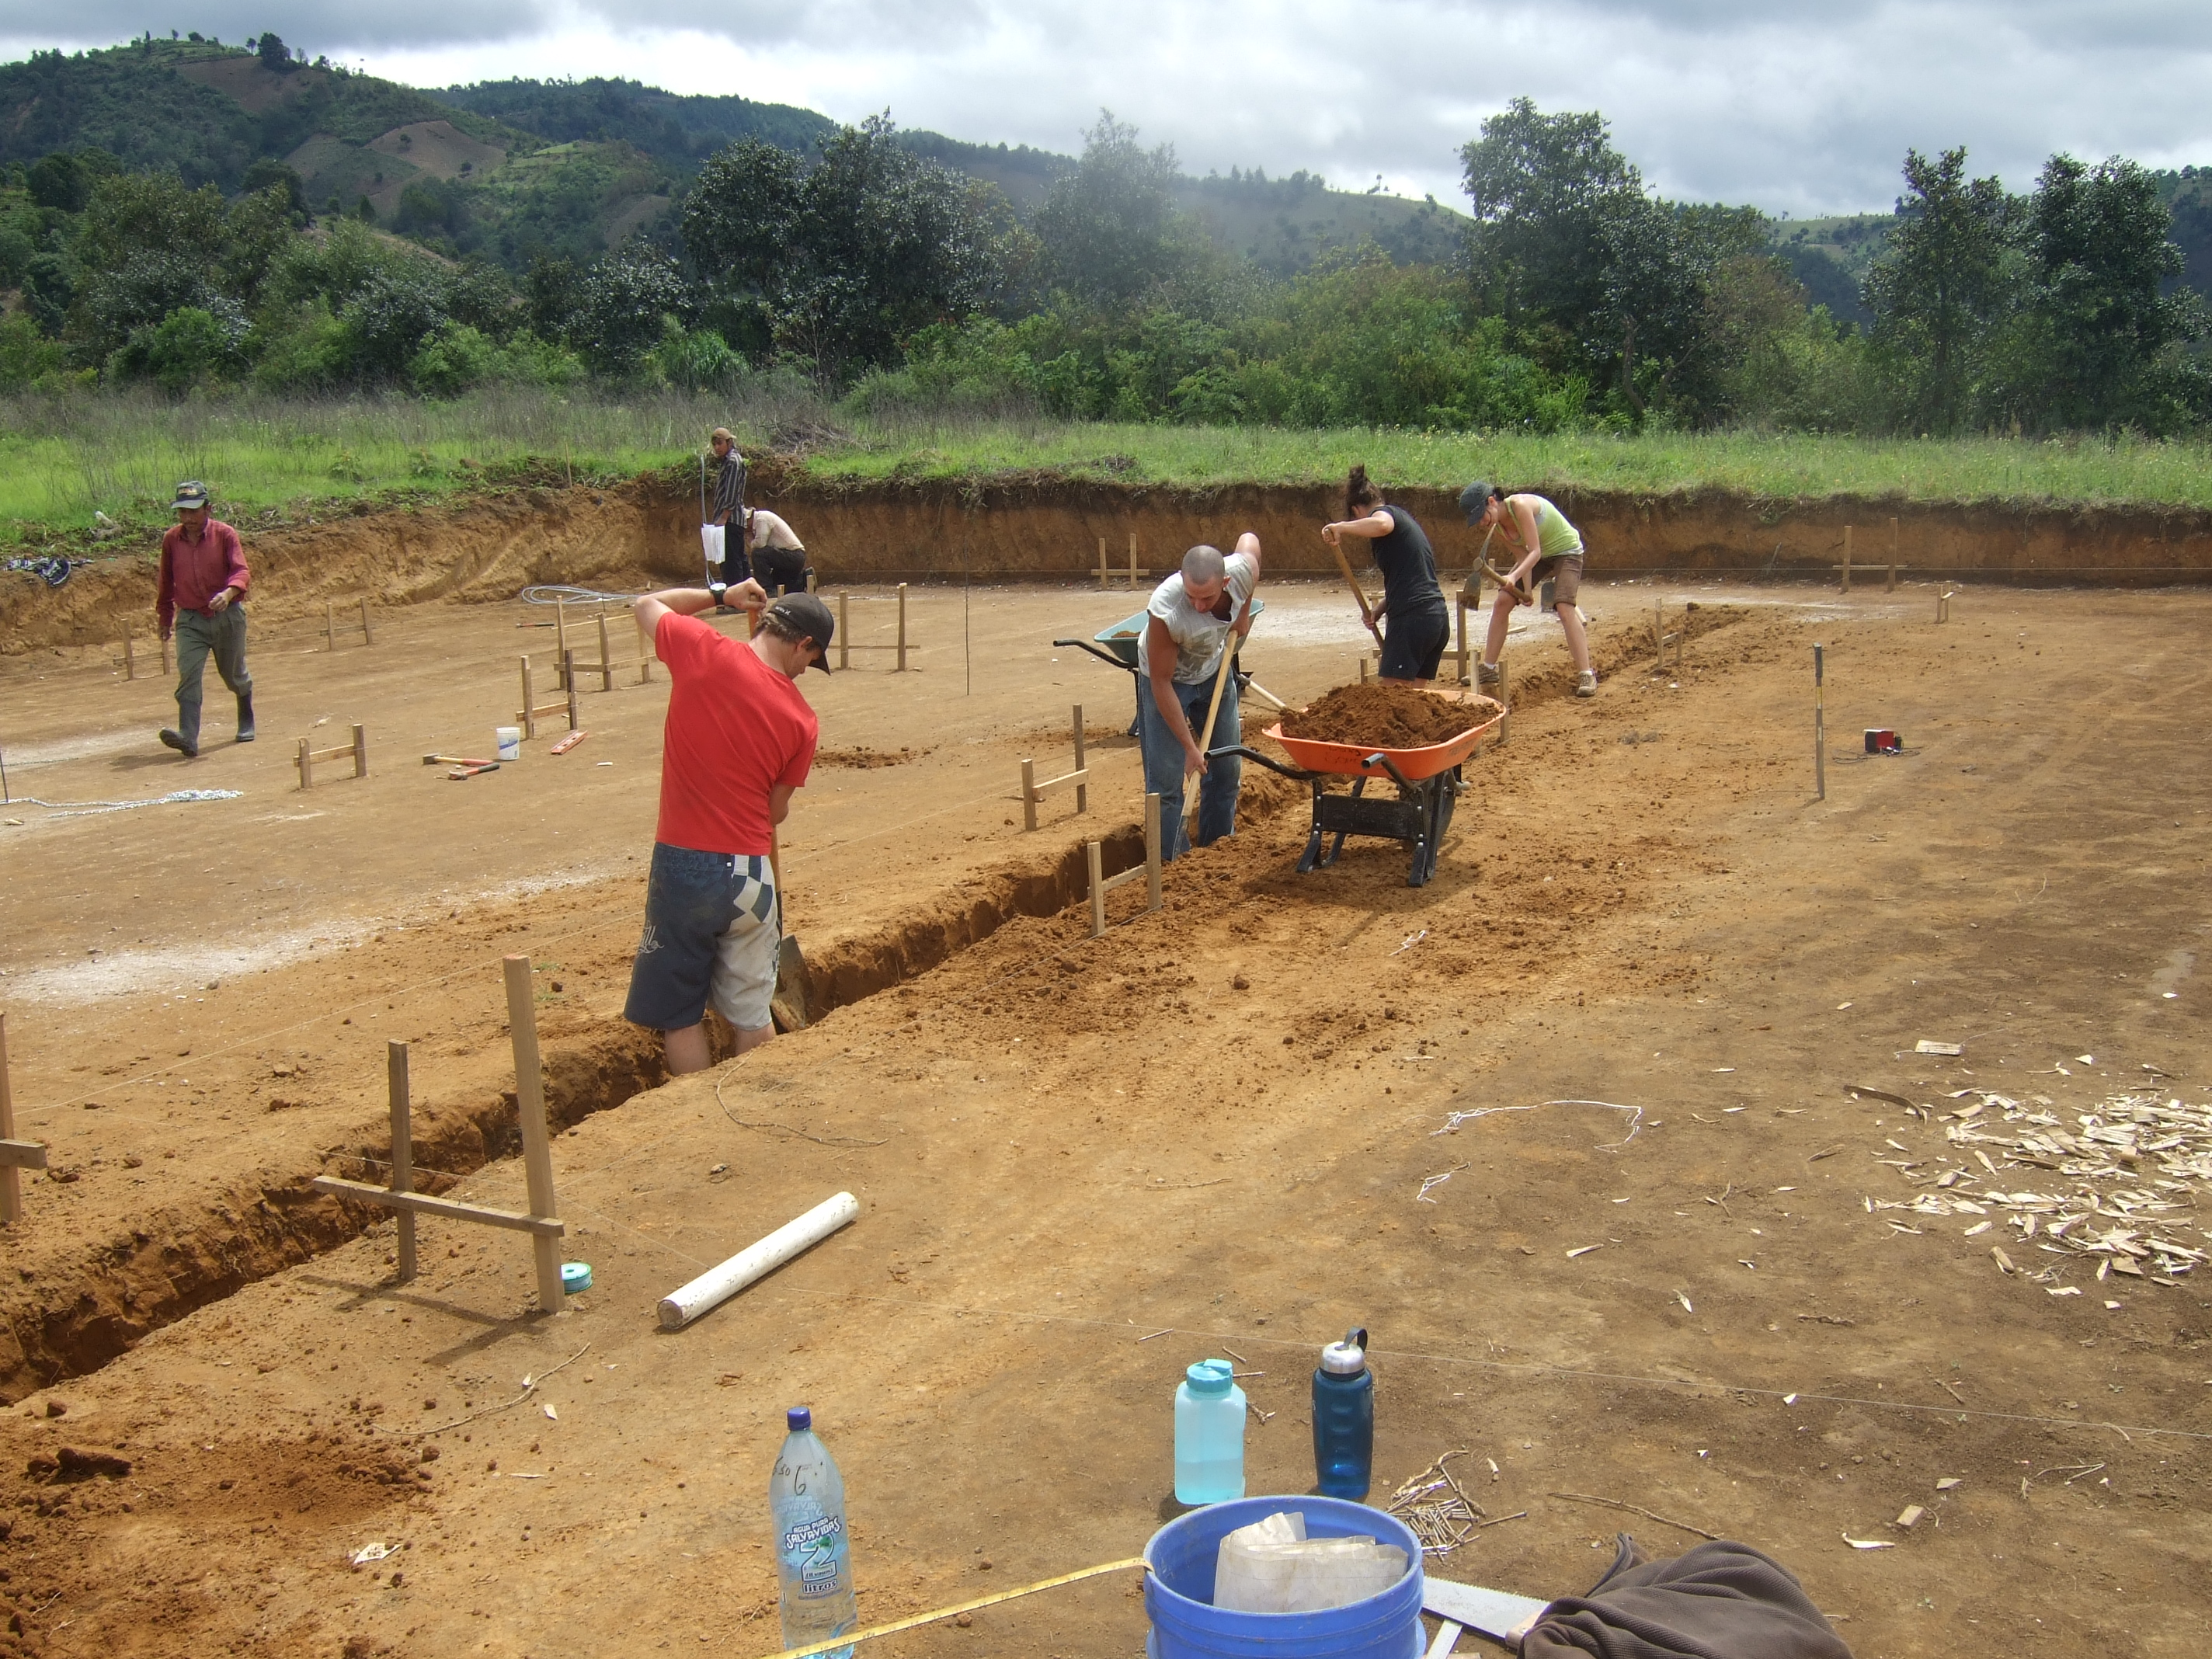 Volunteers digging trenches for the Earthbag home foundations at the Project Somos Children's Village site